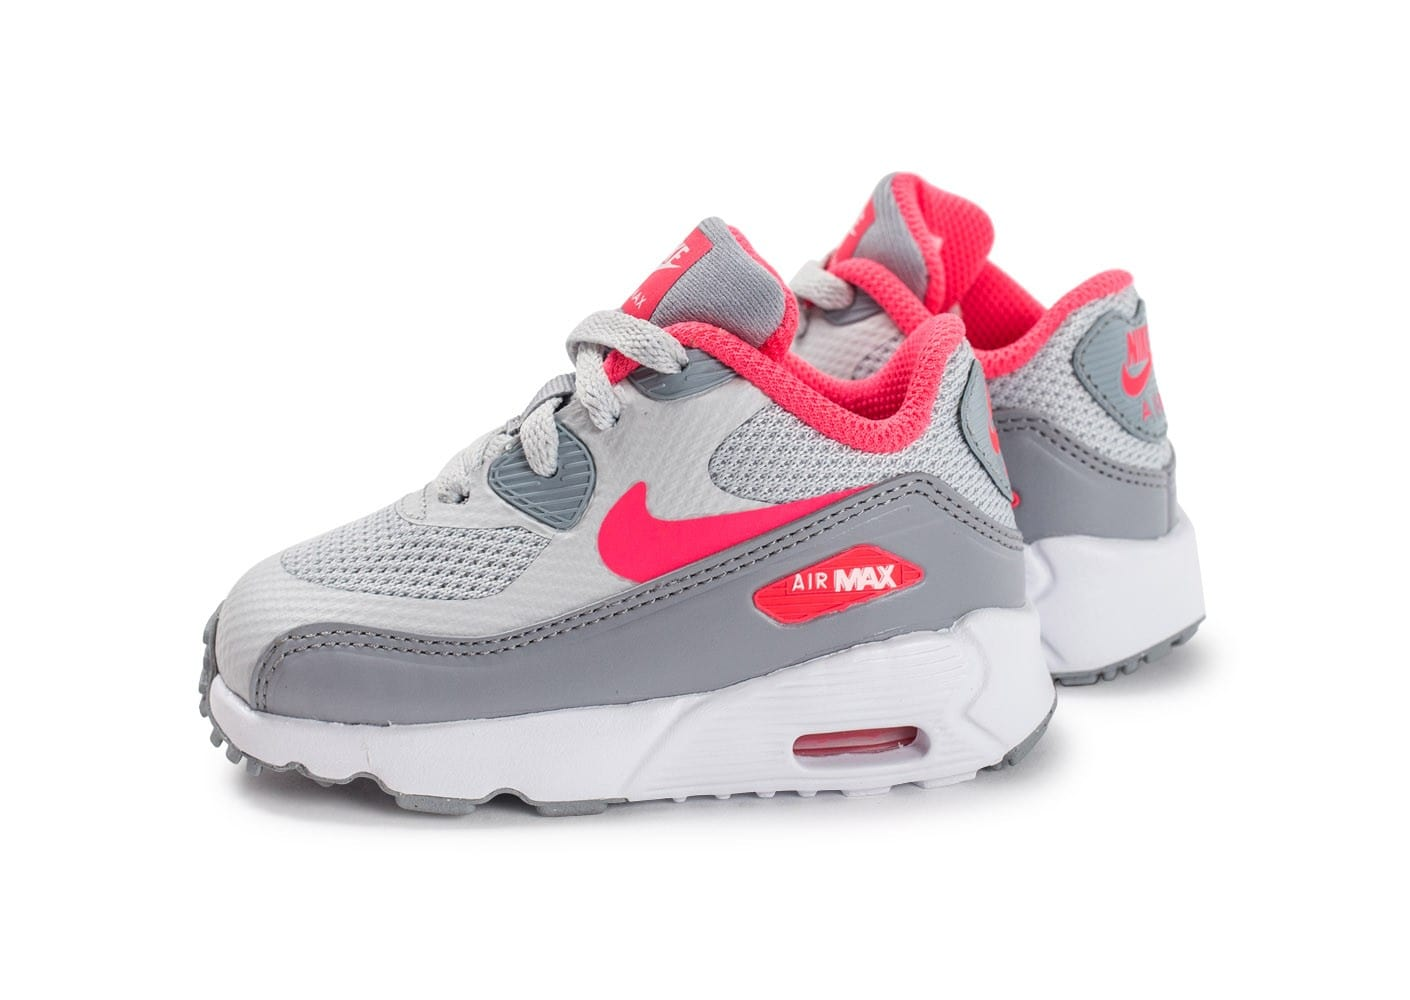 nike air max 90 ultra b b grise et rose chaussures toutes les baskets sold es chausport. Black Bedroom Furniture Sets. Home Design Ideas